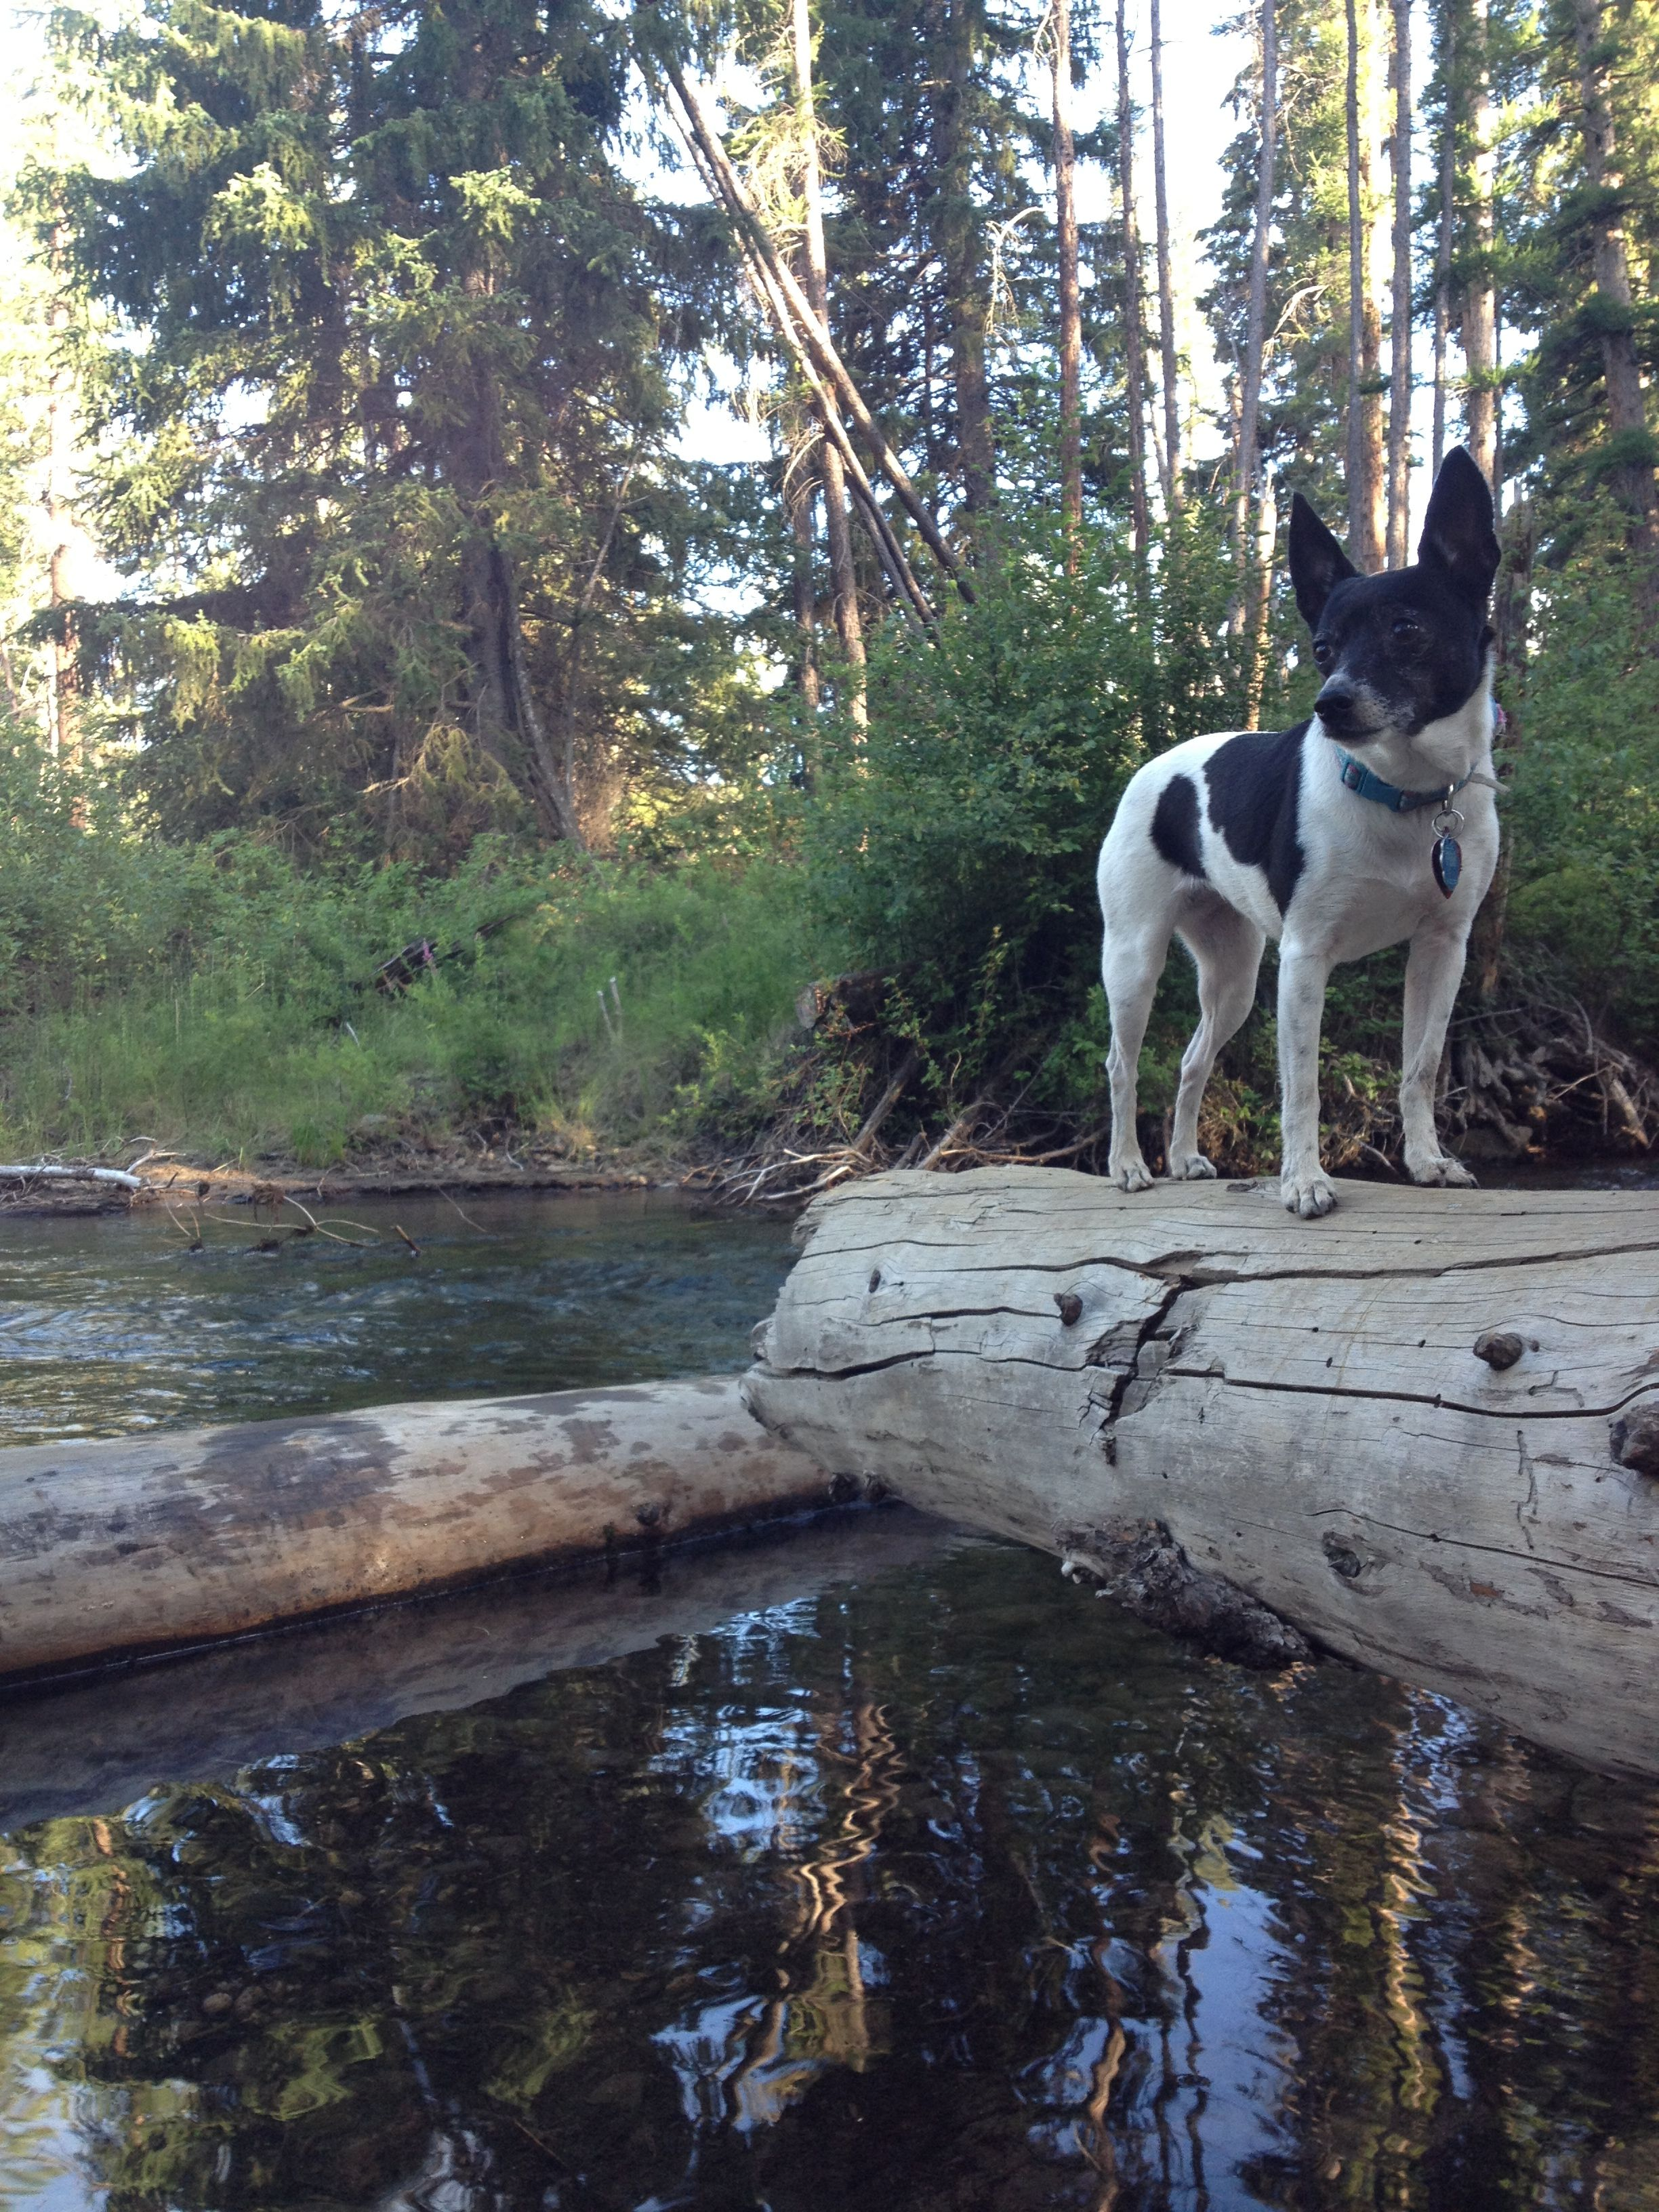 Rat terrier, Ella at Shevlin Park, Bend Oregon. Summer